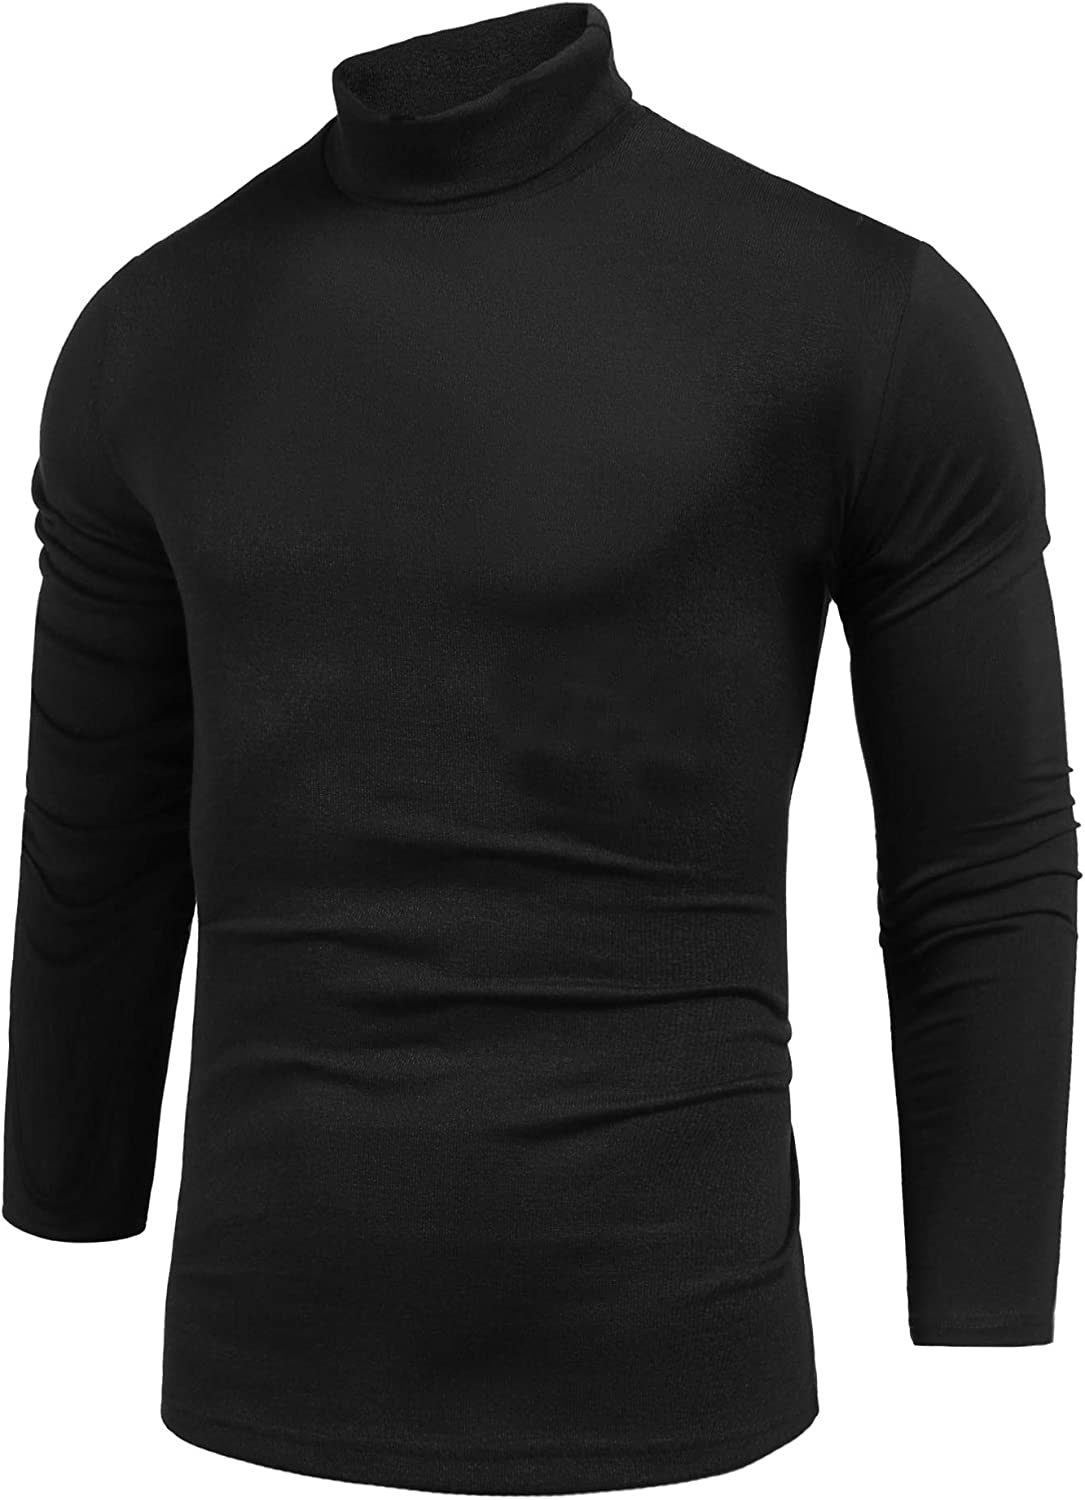 Pacinoble Men's Turtleneck Pullover Sweater Casual Long Sleeve Slim Fit Basic Knitted Thermal Tops